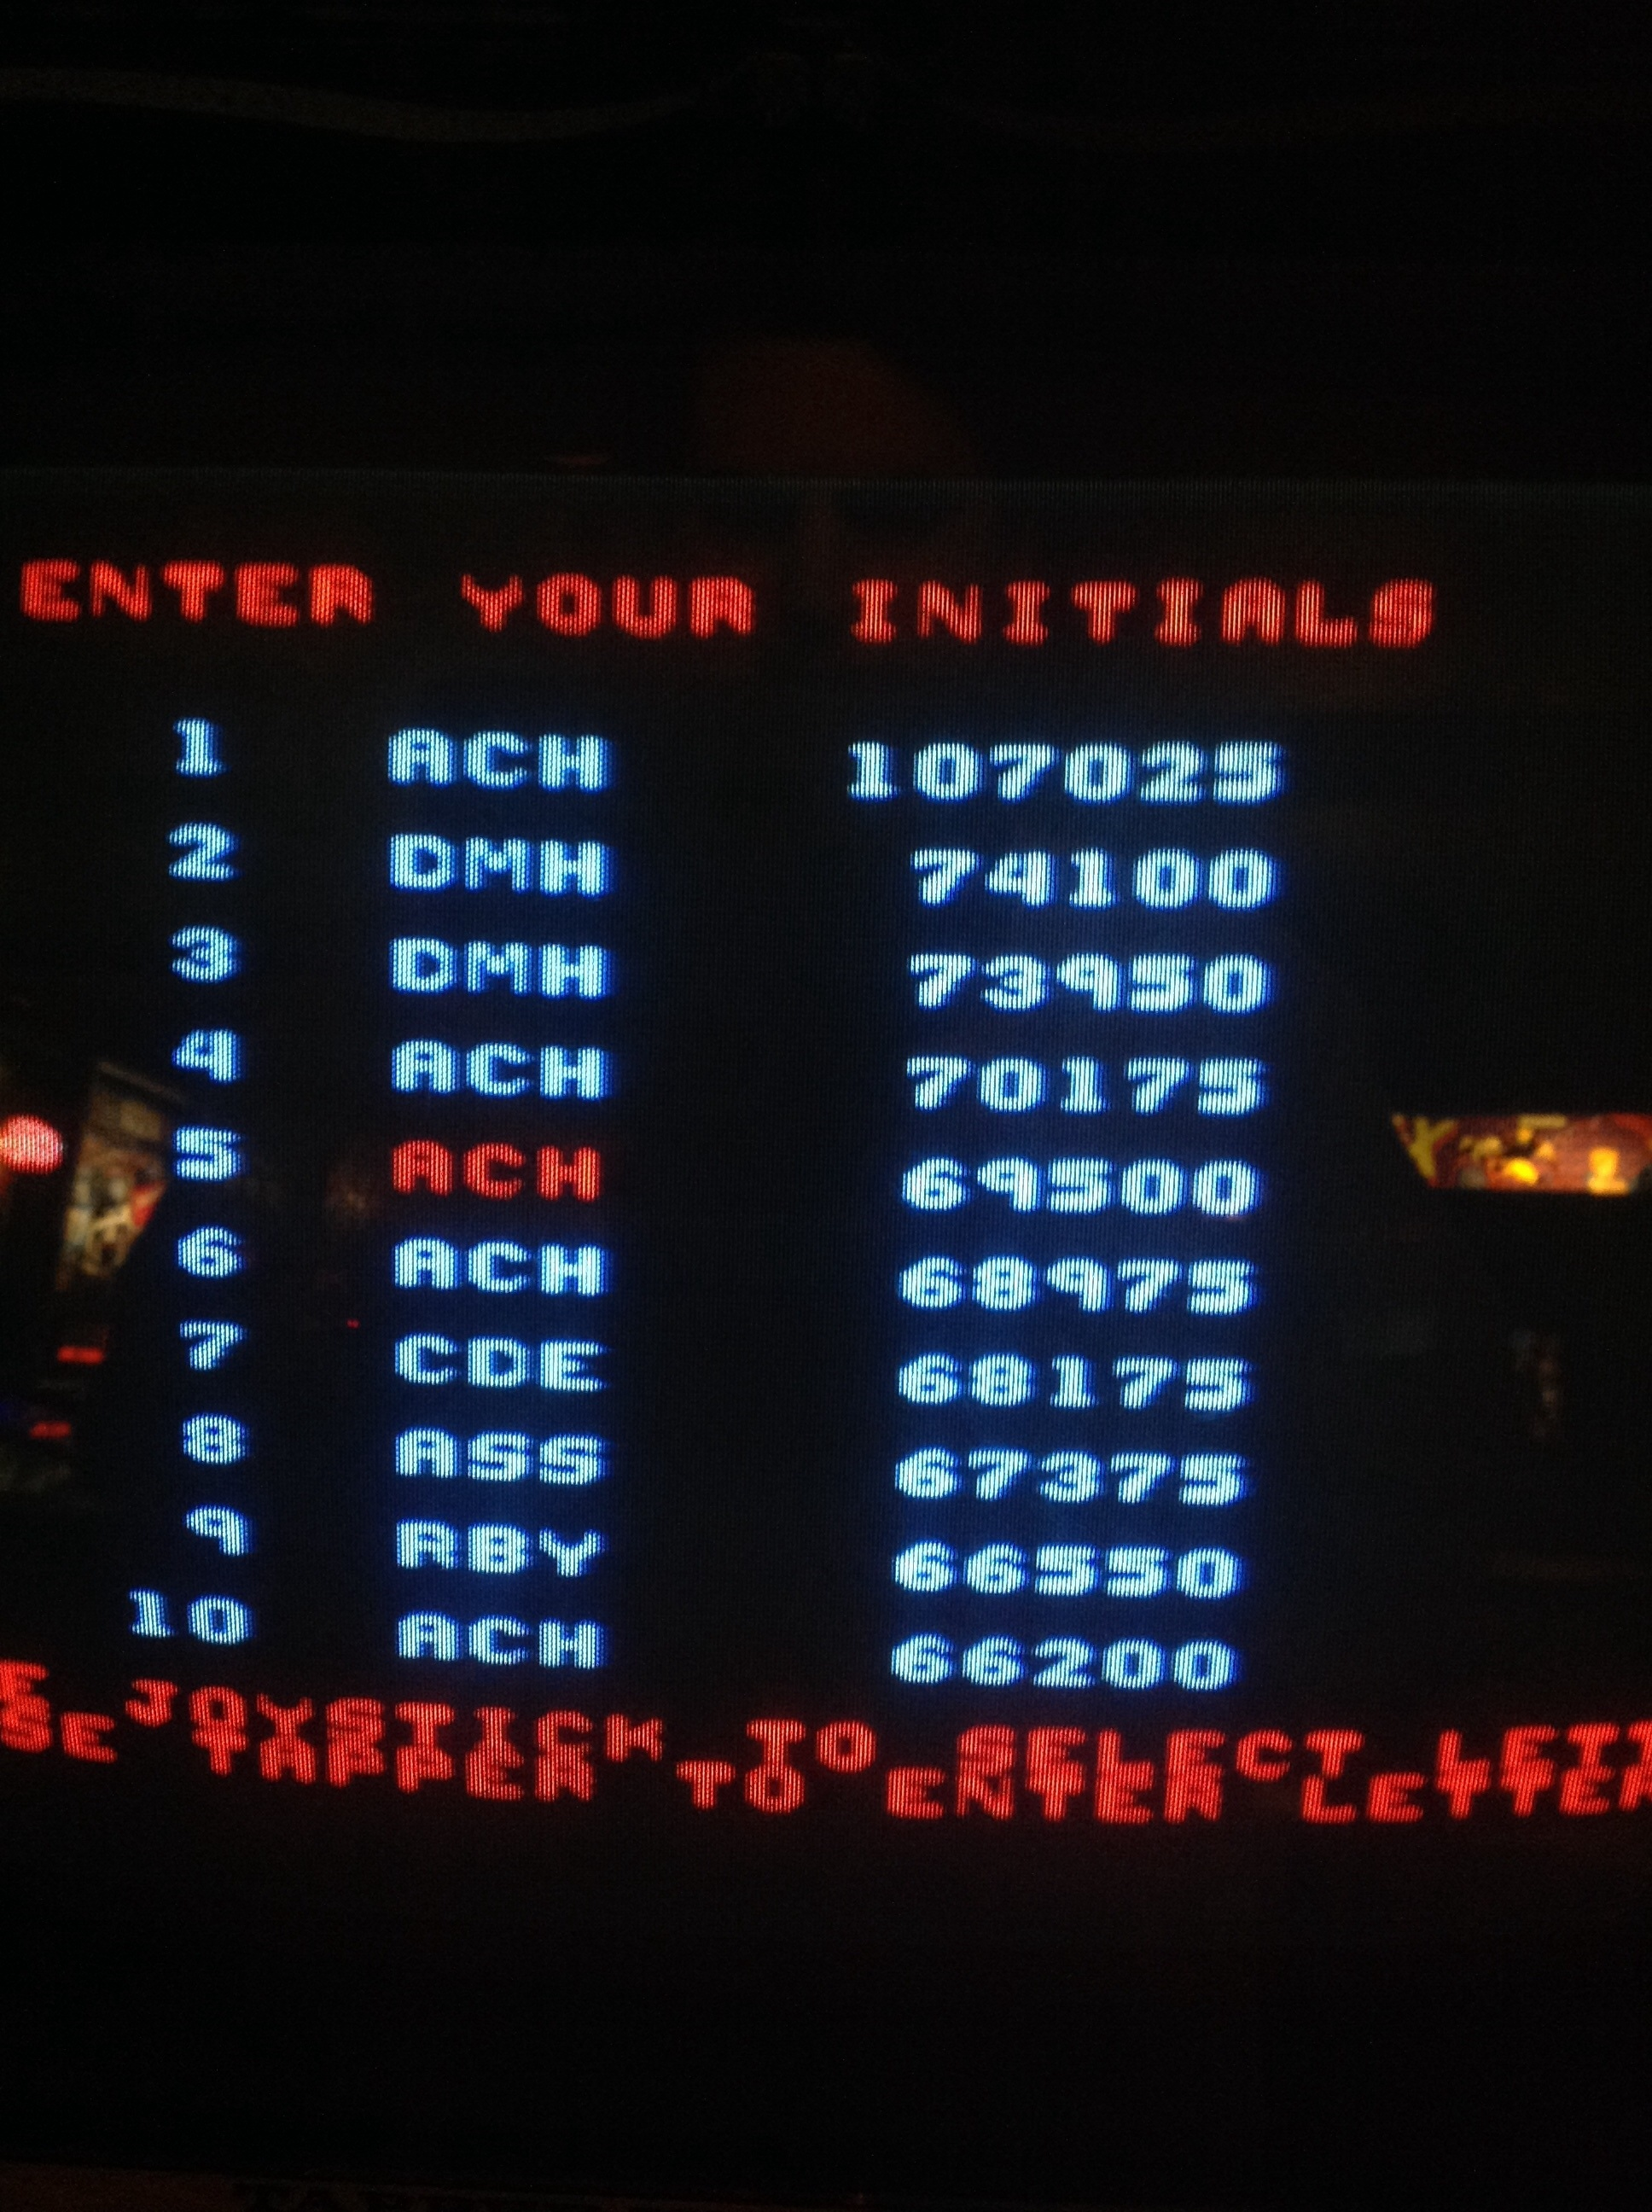 allenhuffman: Tapper (Arcade) 107,025 points on 2014-04-03 21:05:31